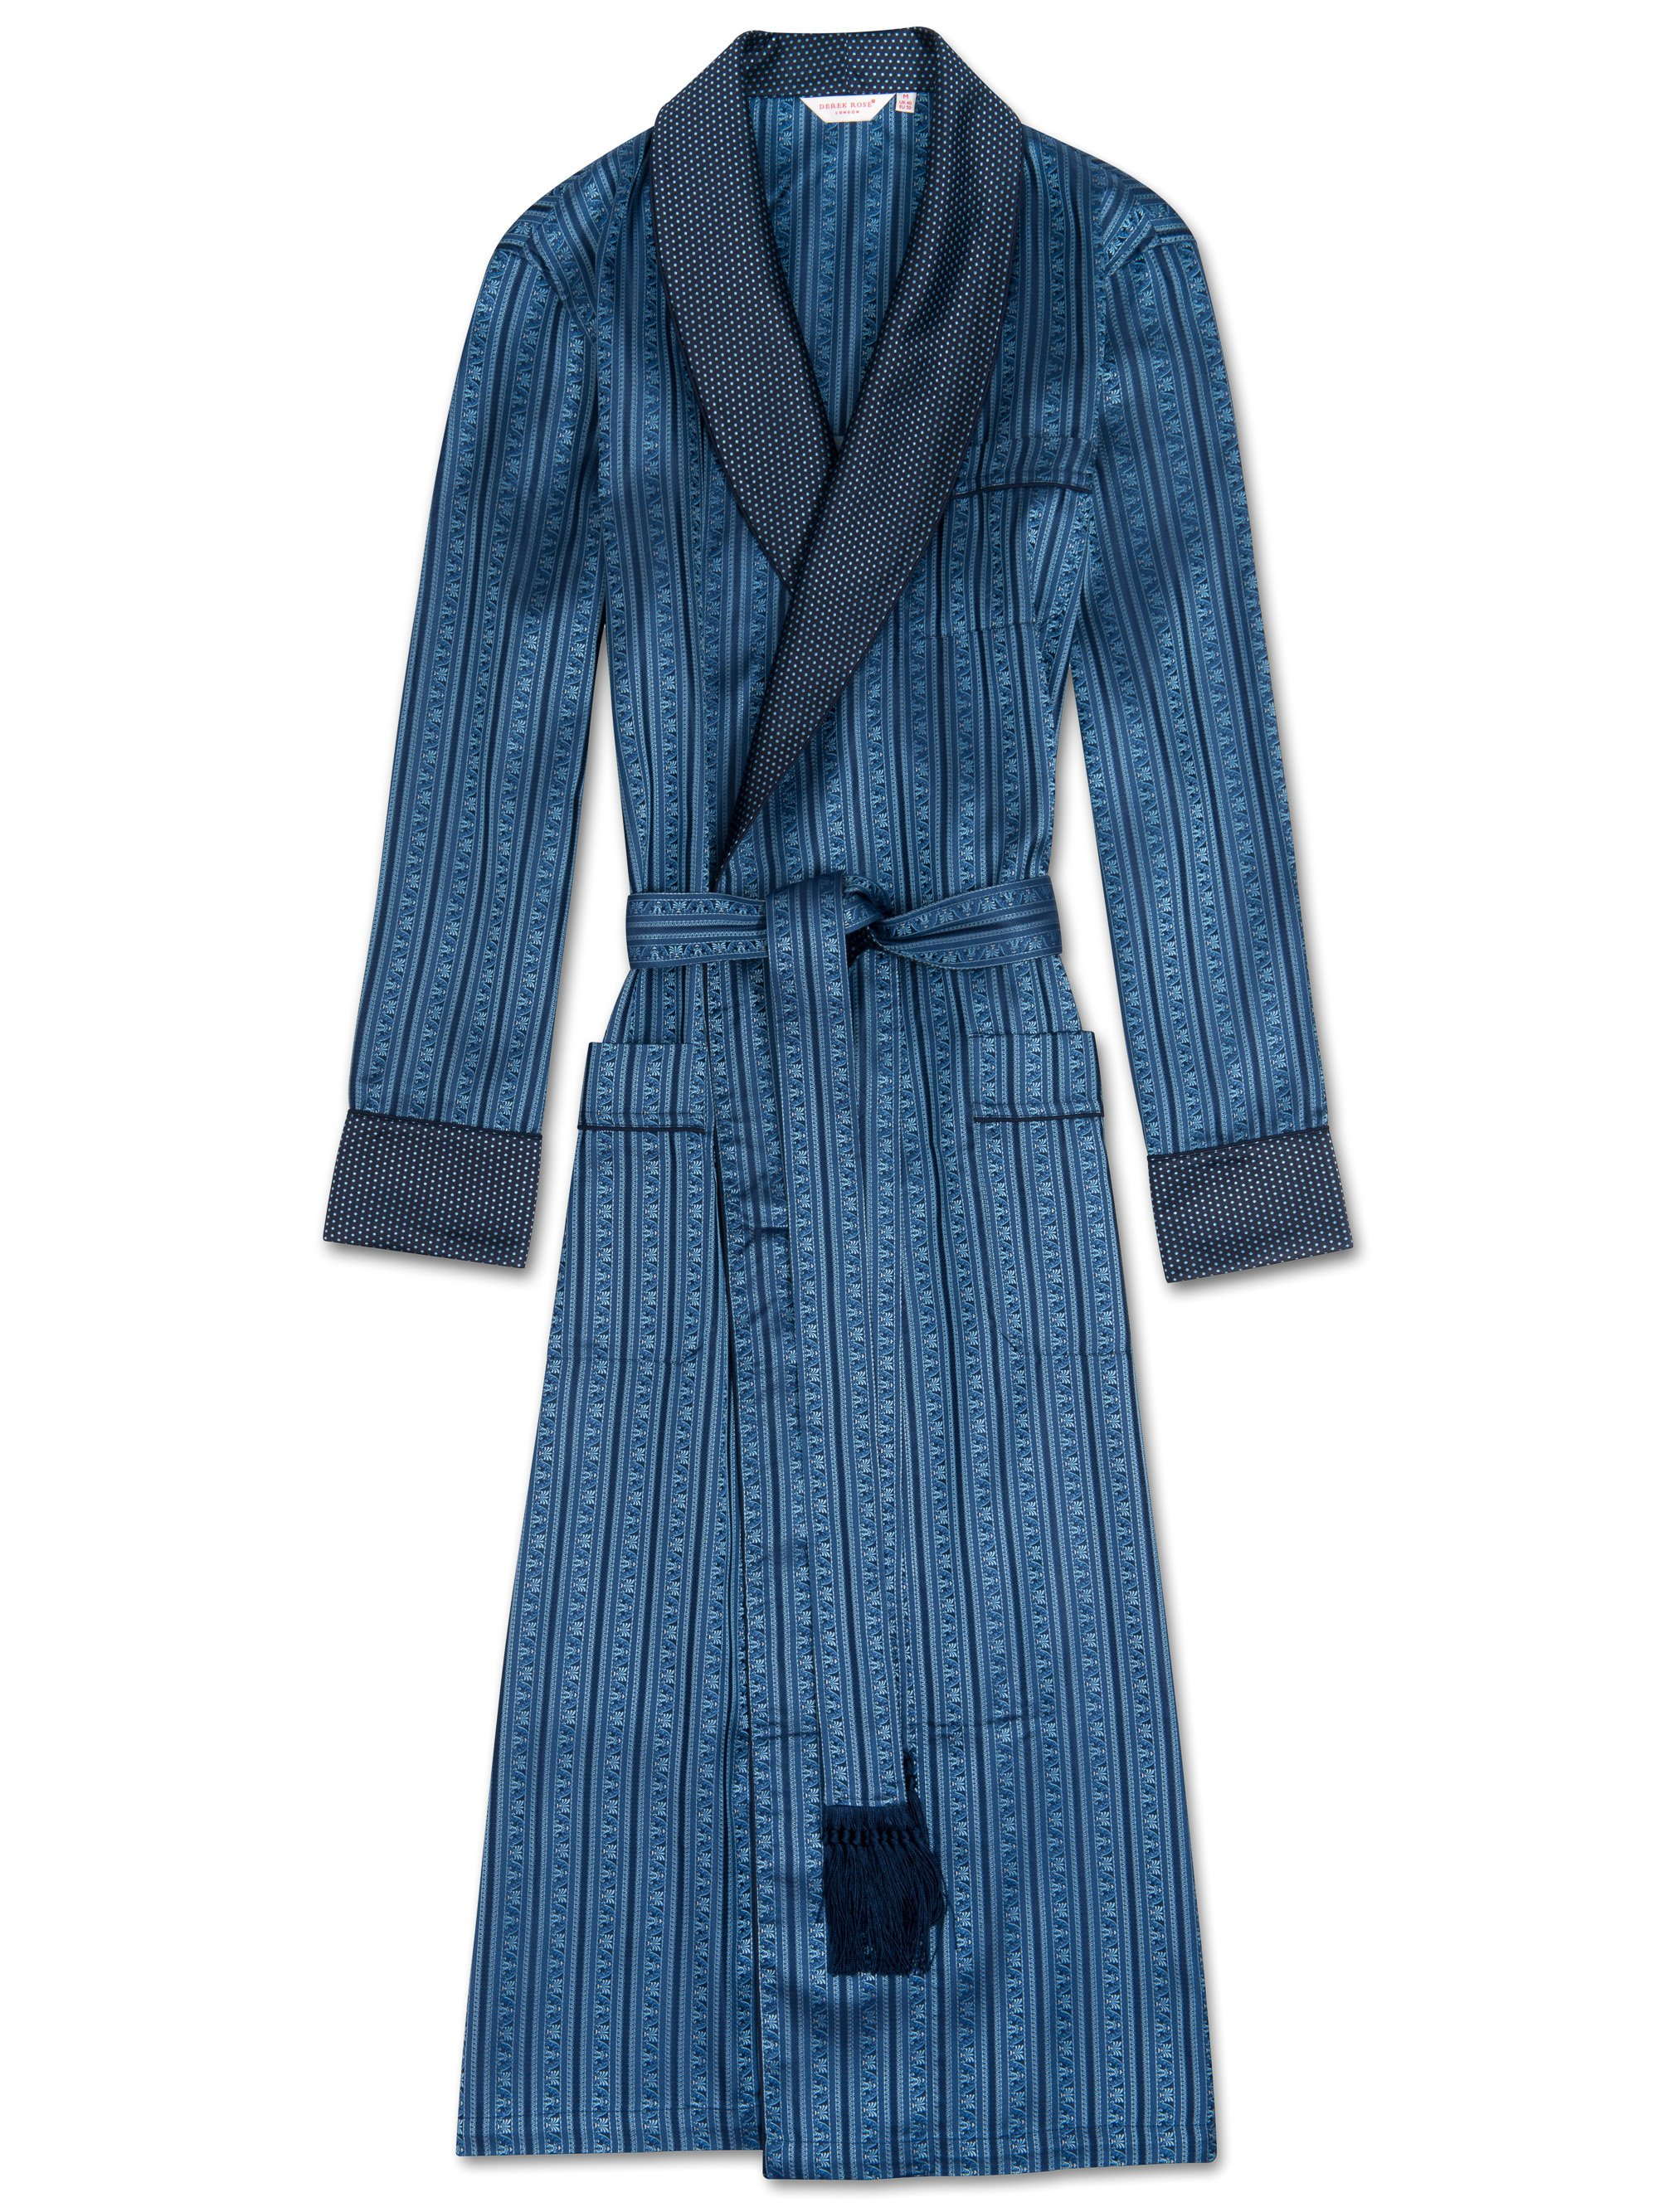 Men's Tasseled Belt Dressing Gown Verona 30 Pure Silk Blue